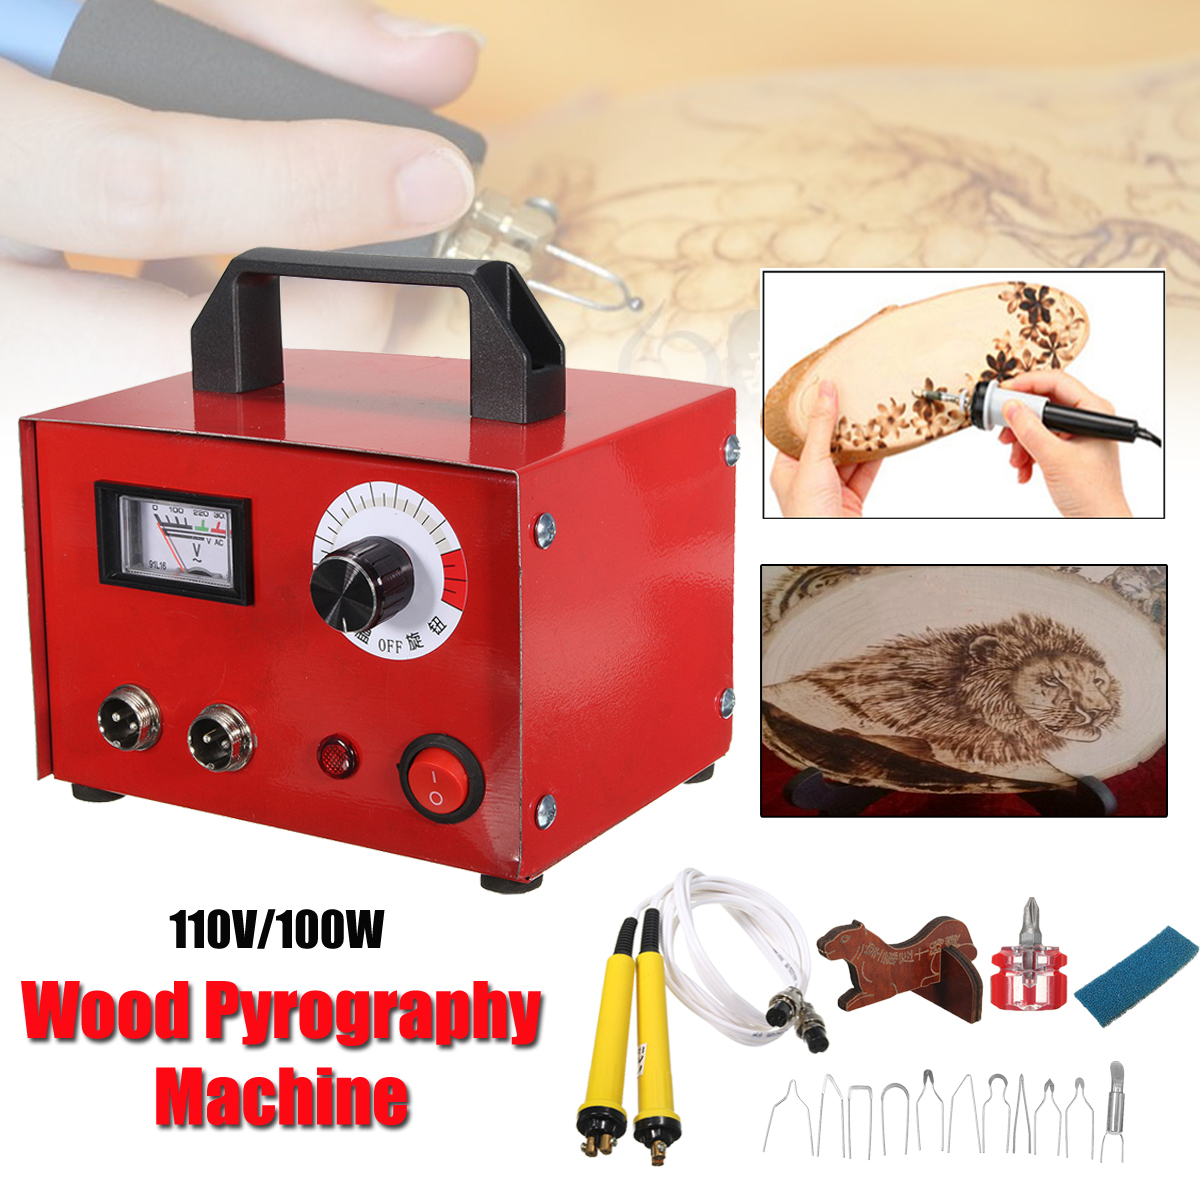 110V 100W Multifunction Gourd Laser Pyrography Engraving Sculpture Carving Heating Wire Pen Kit Tool Woodburning